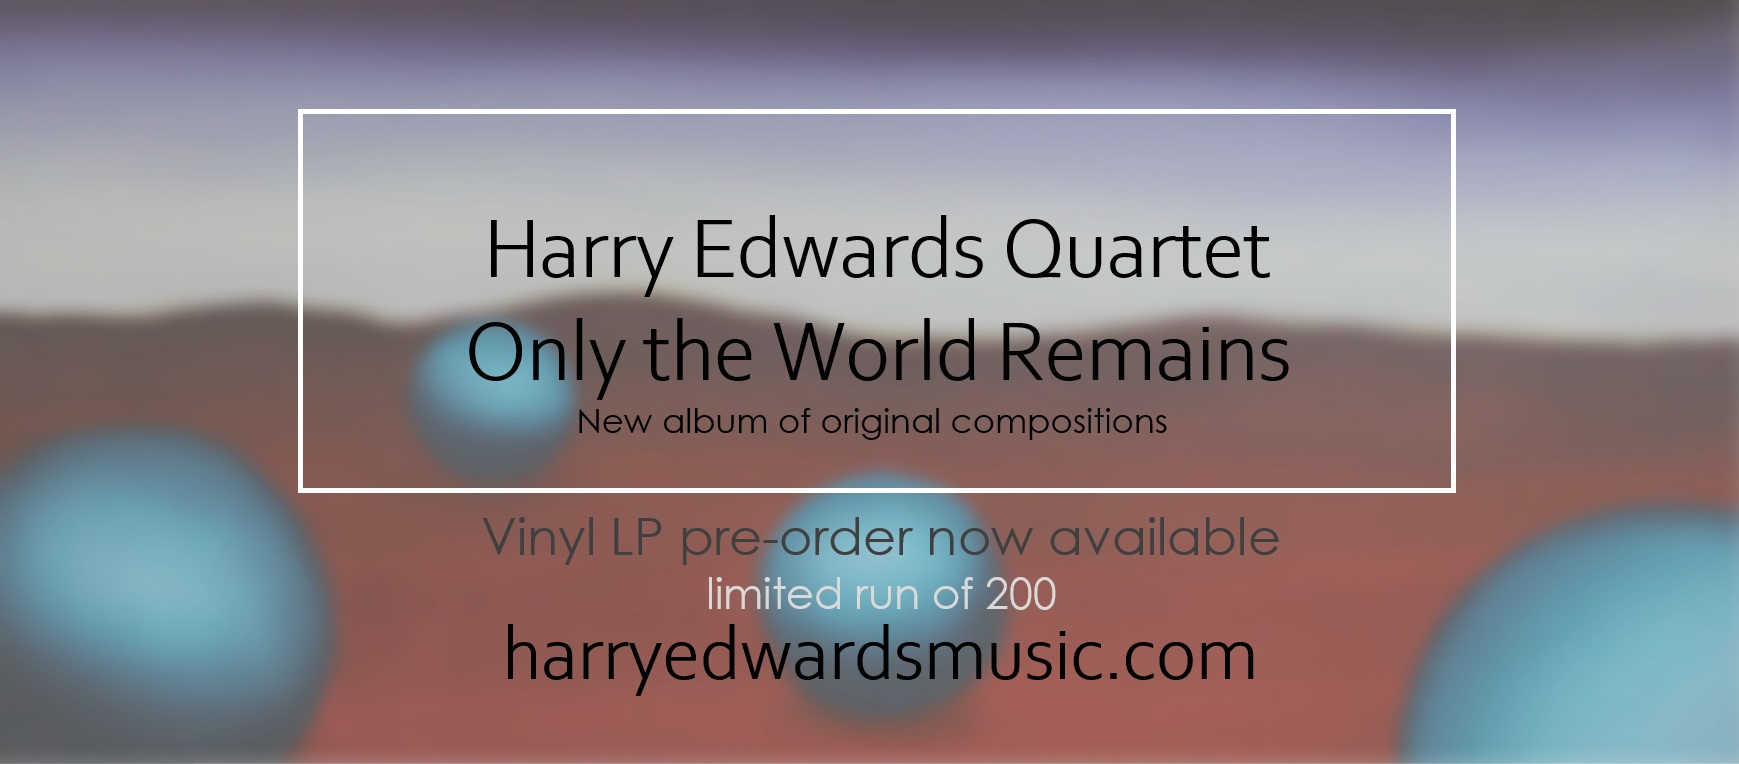 https://www.harryedwardsmusic.com/only-the-world-remains-vinyl-lp-preorder/